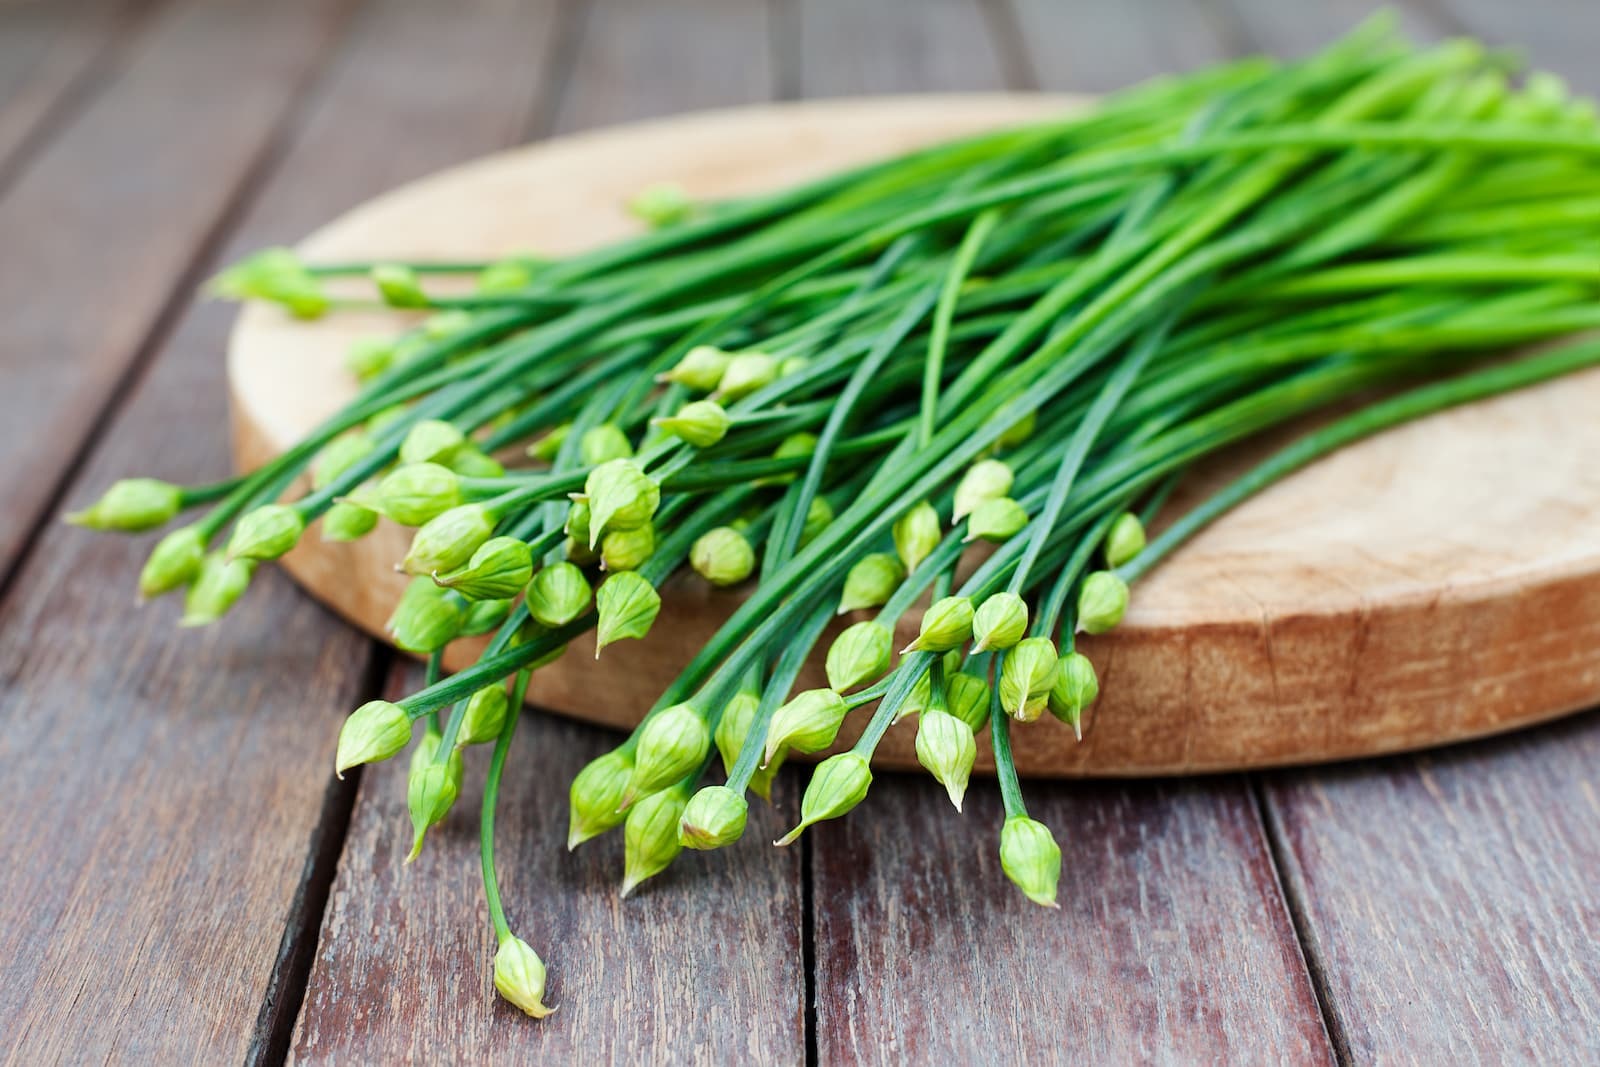 Garlic Chives: The Herb For A Milder Garlic Flavor